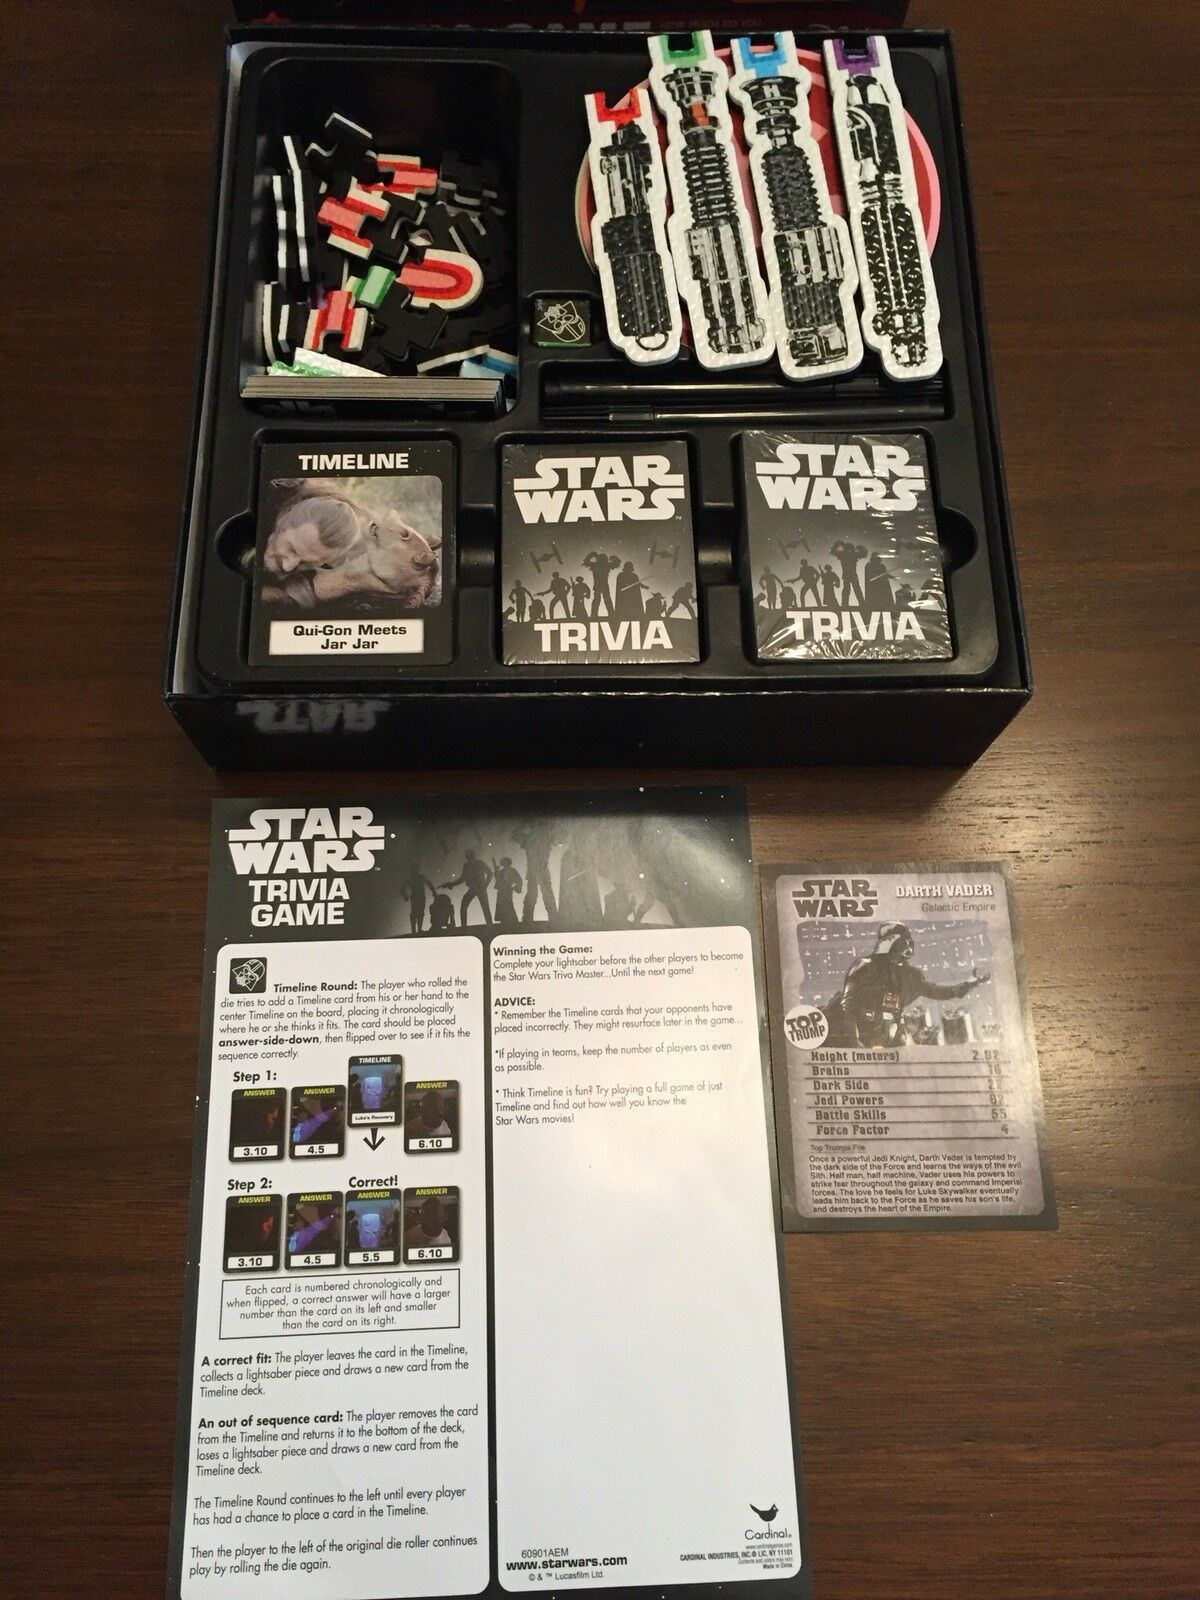 Star Wars Trivia Game Board Game Darth Vader Disney Pre-Owned Great Condition image 6